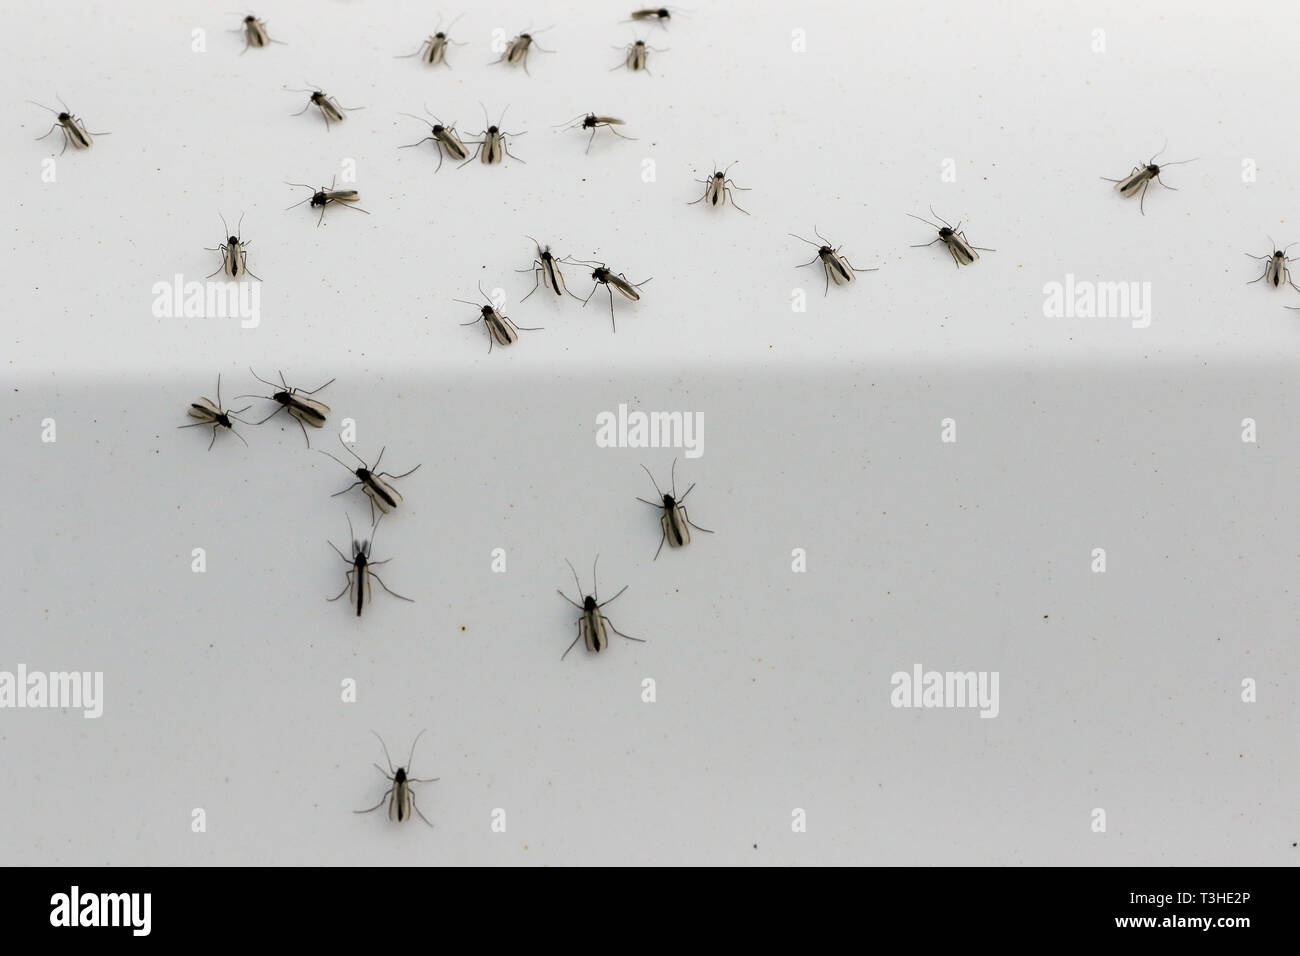 Lough Neagh Mayfly hatch April 2019 .Mayflies on a white background. with the ephemeroptera on the side of a parked car. - Stock Image